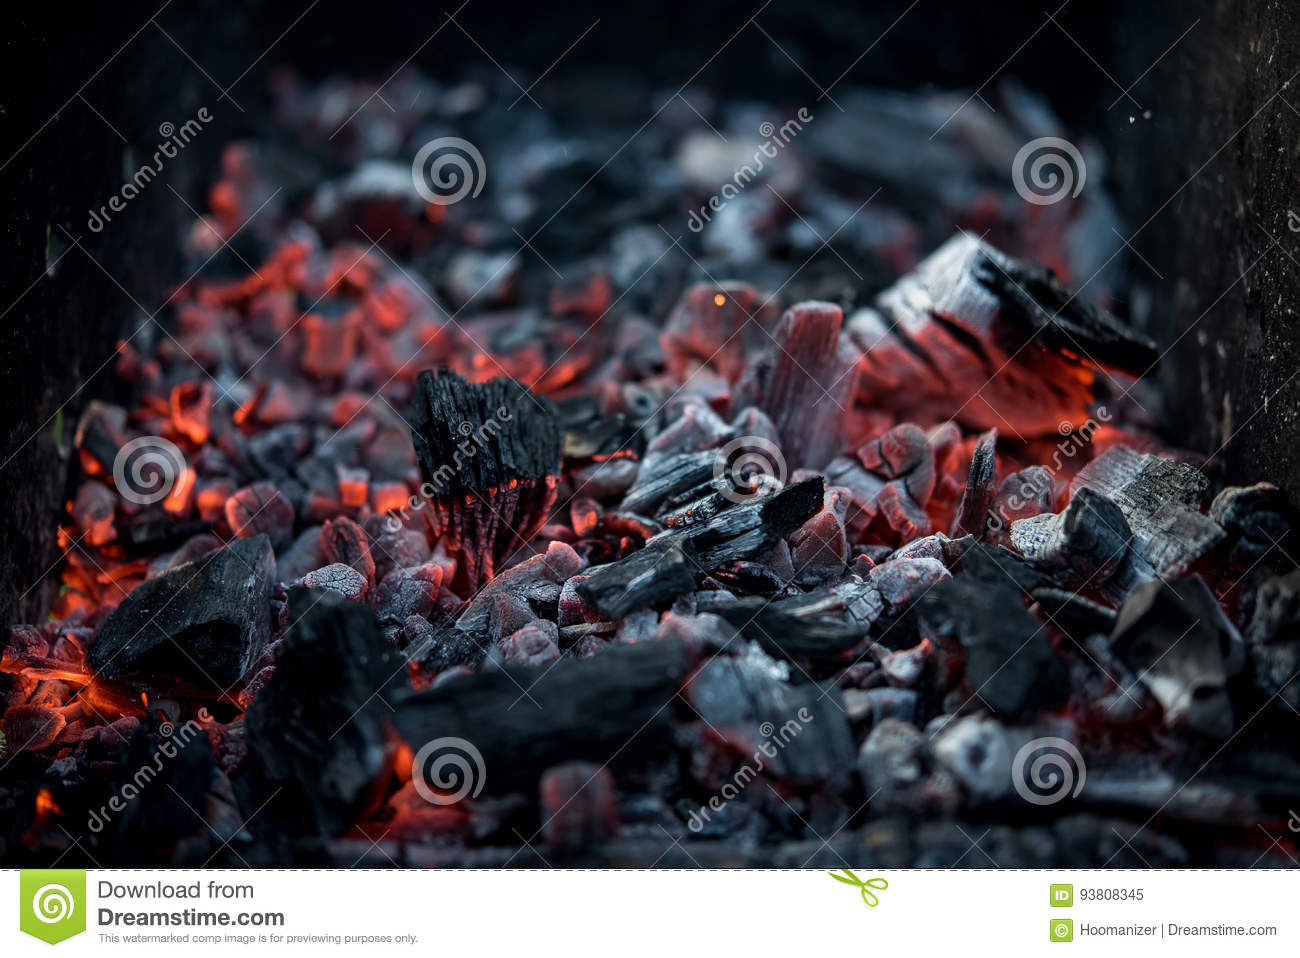 Charcoal smouldering material black mineral structure grill